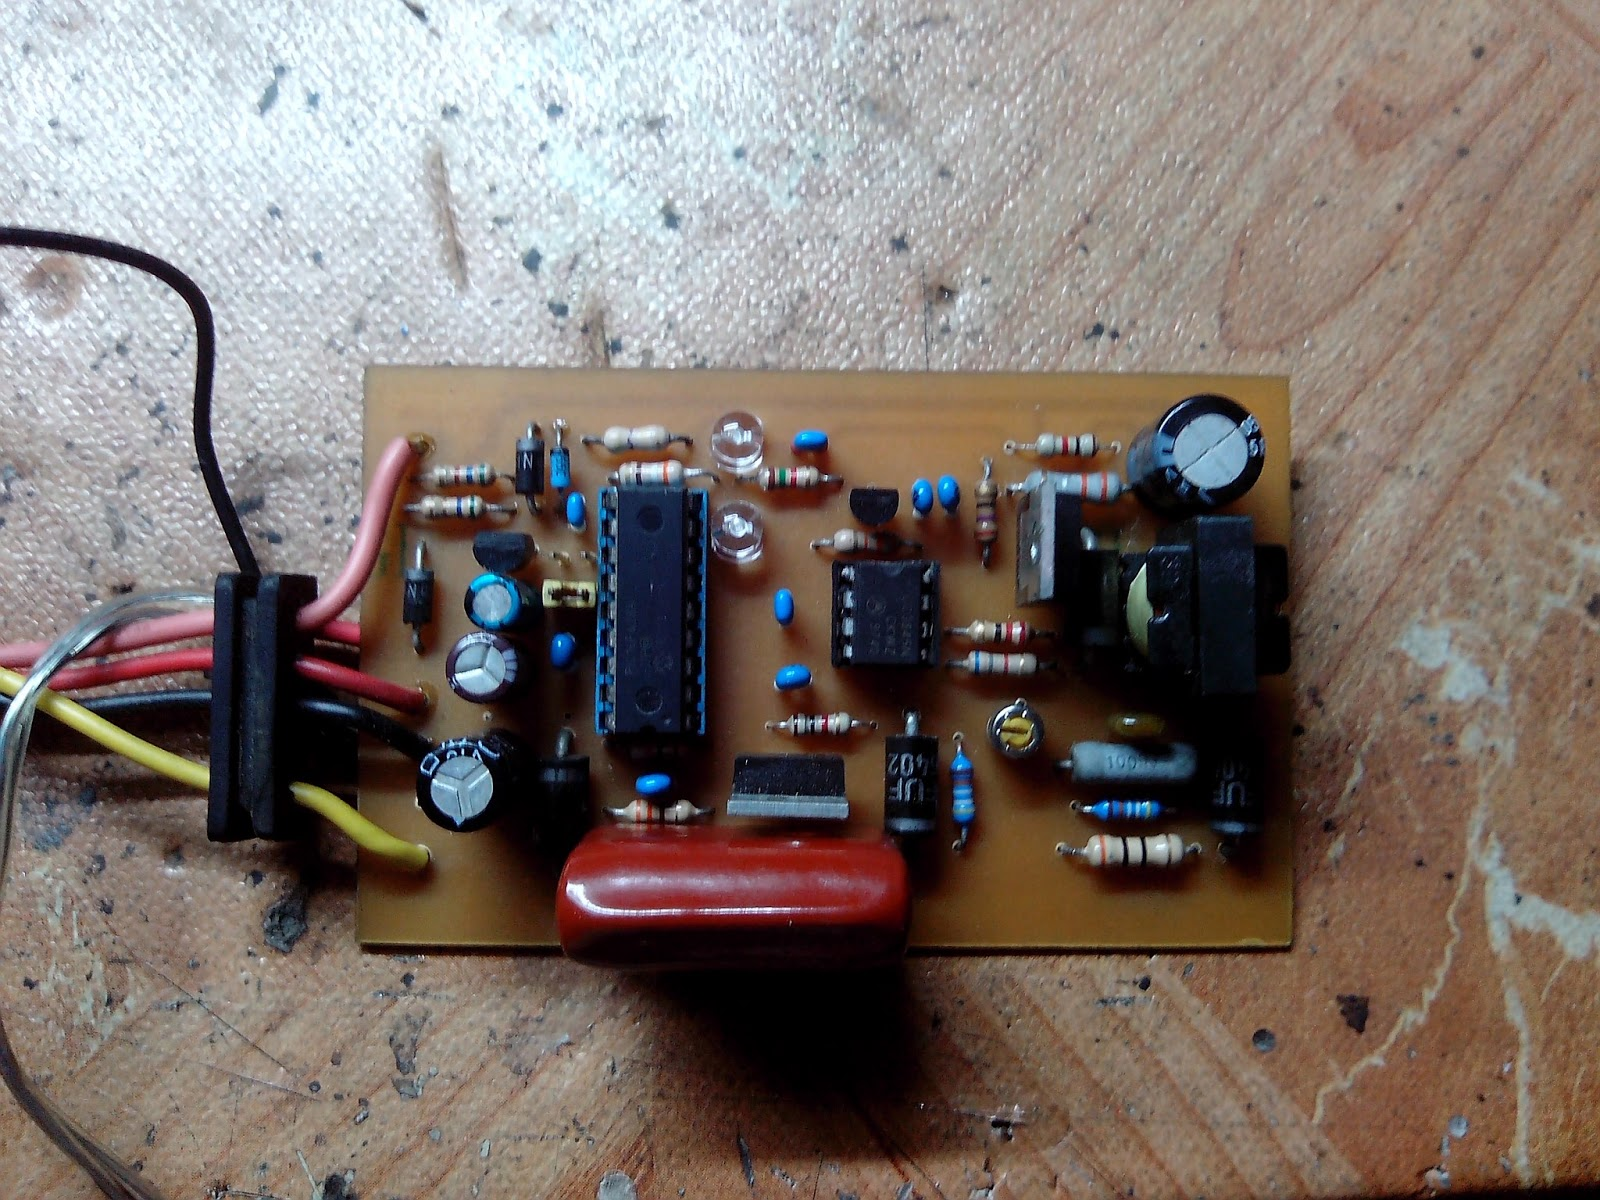 yamaha mio soul i 125 wiring diagram for telecaster cdi schematic -